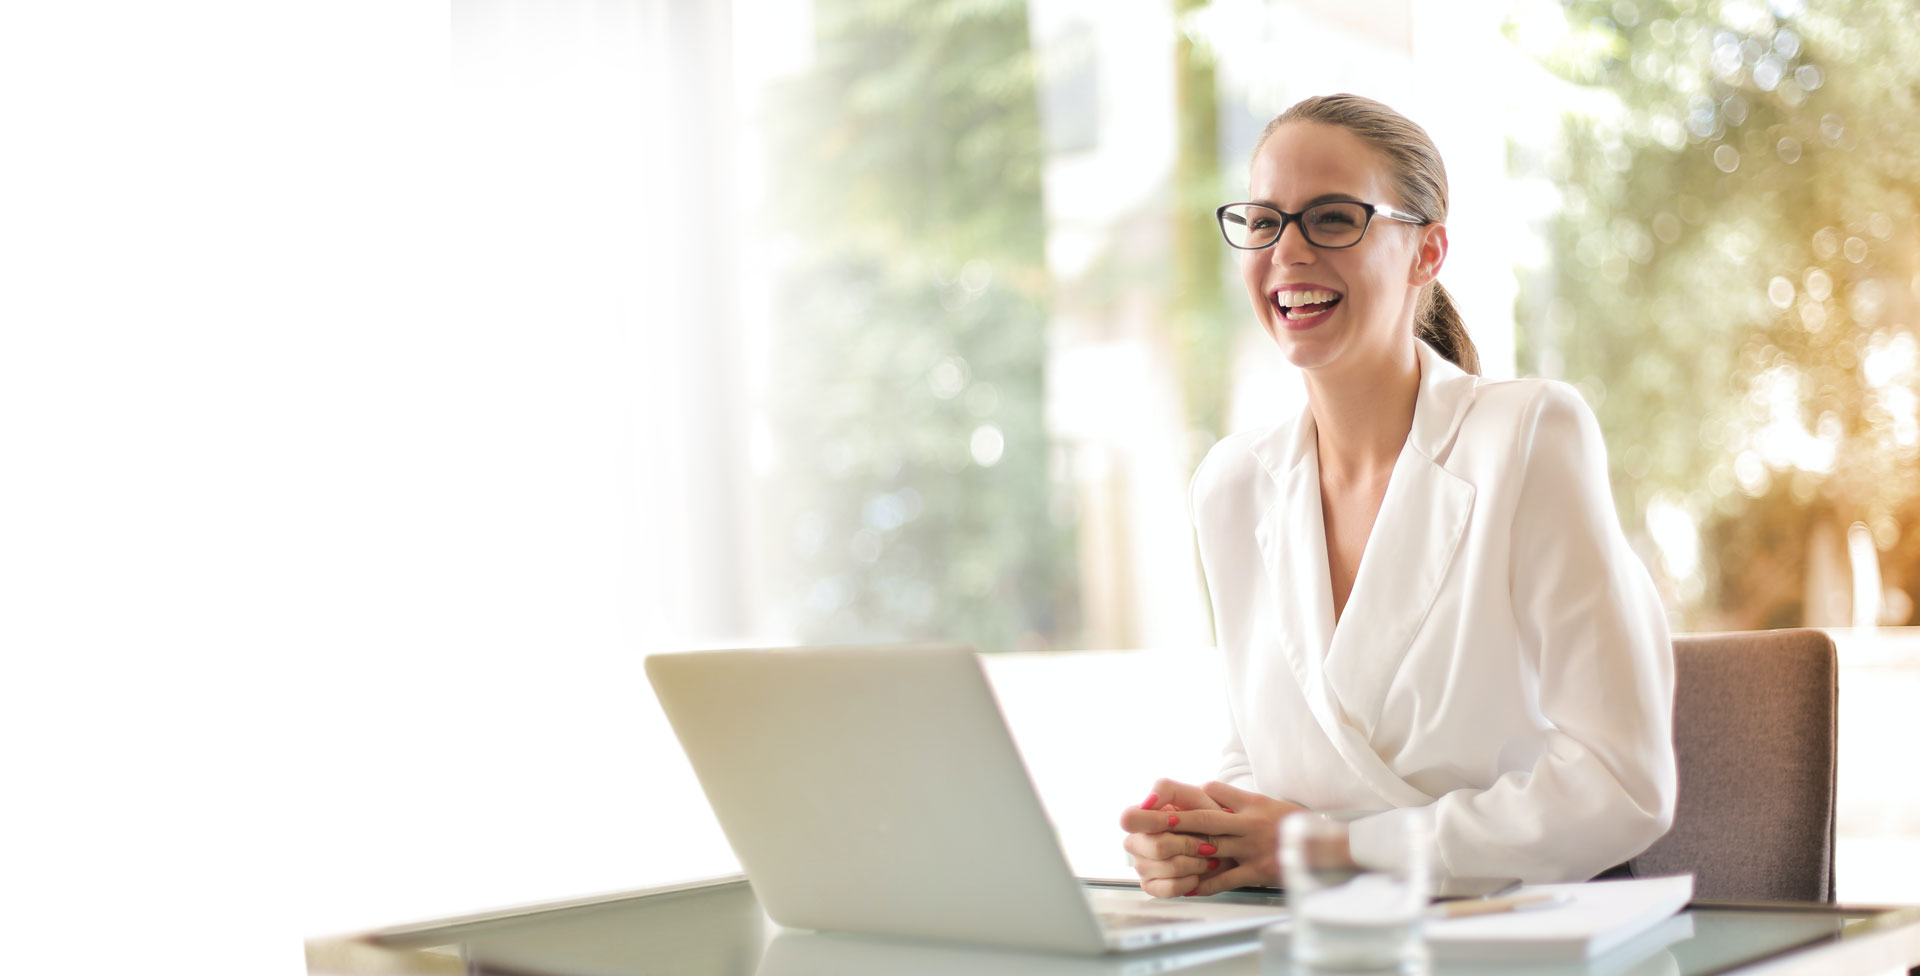 Business woman working with confidence